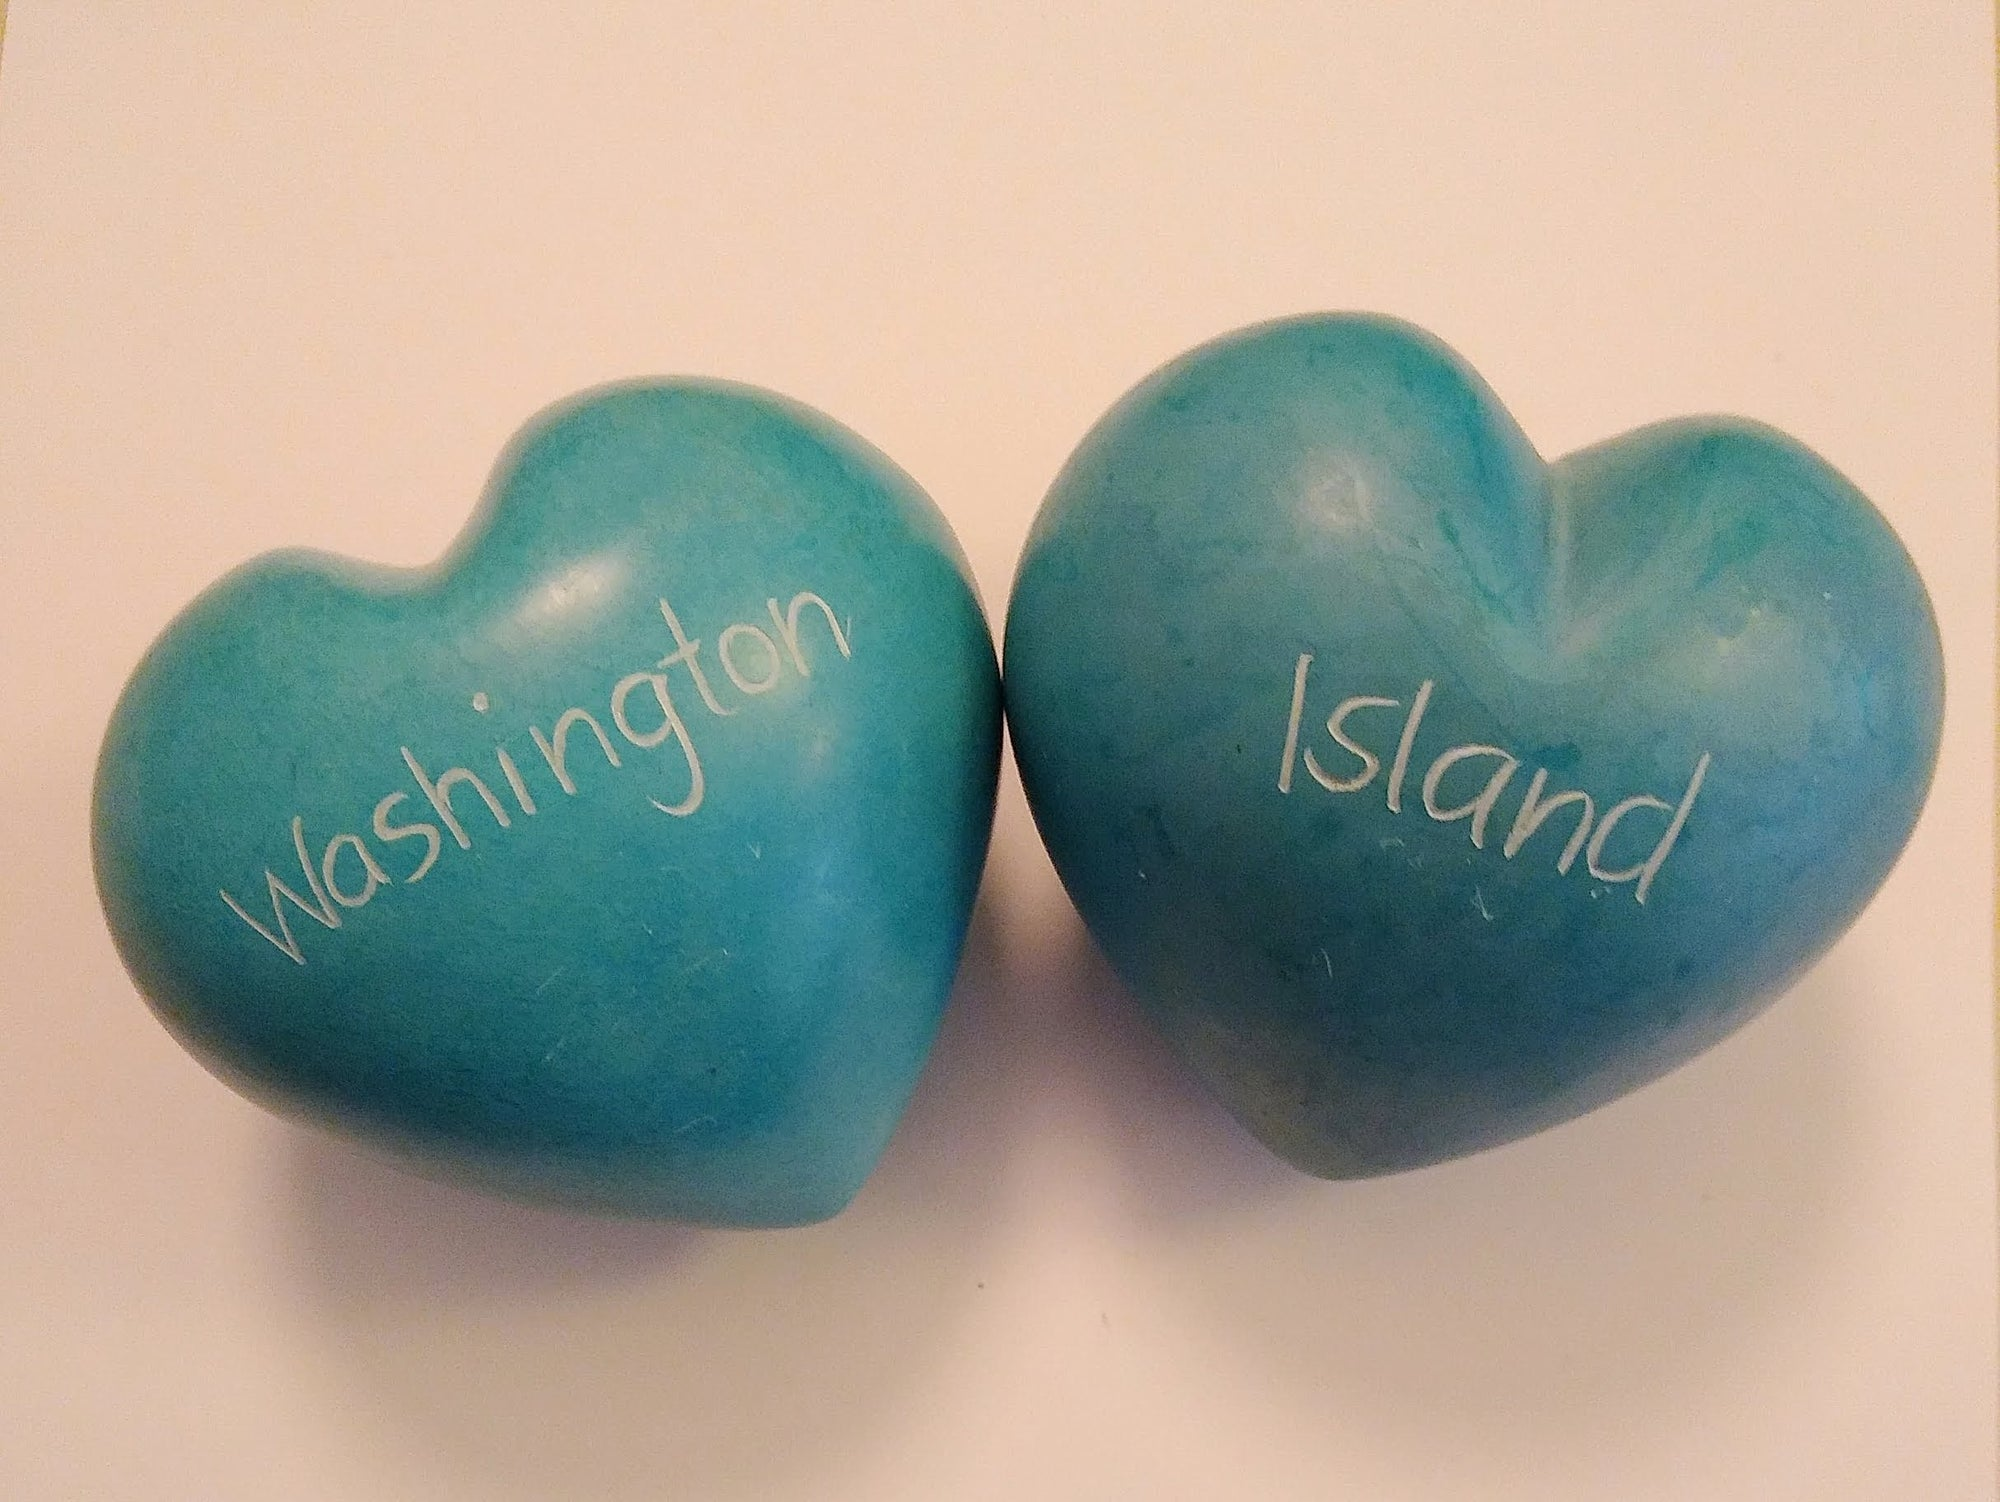 Washington Island Paperweight (IS)